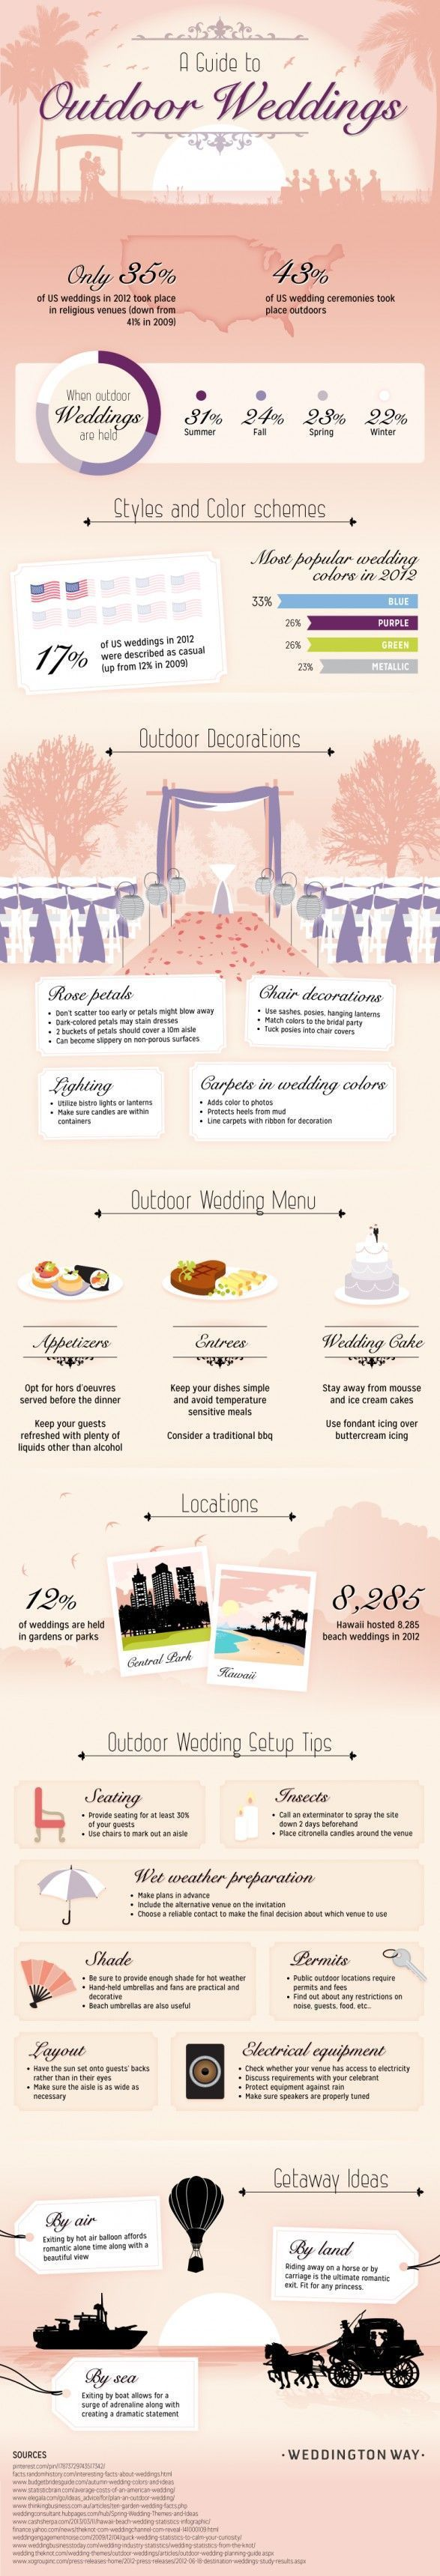 Life-Hacks and Advice for Outdoor Weddings [INFOGRAPHIC] » The Springs Events